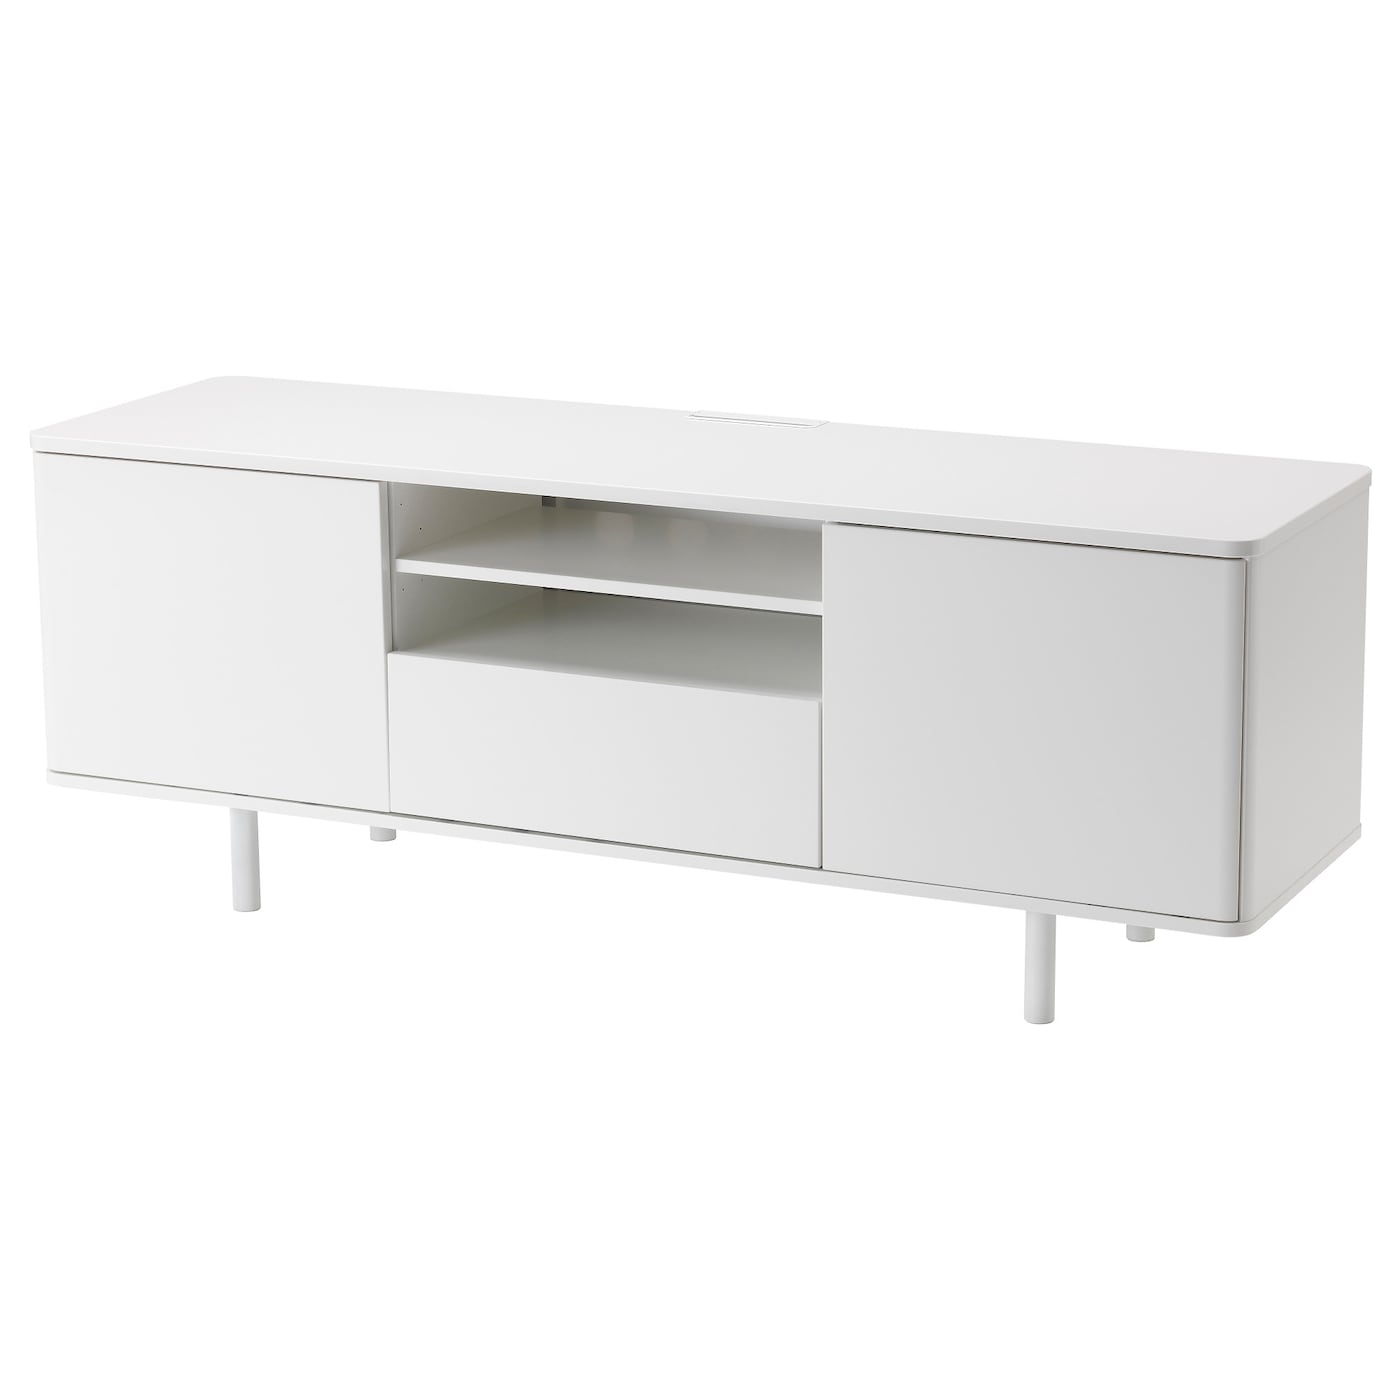 Mostorp Banc Tv Brillant Blanc 159×46 Cm Ikea # Meuble Tv Brillant